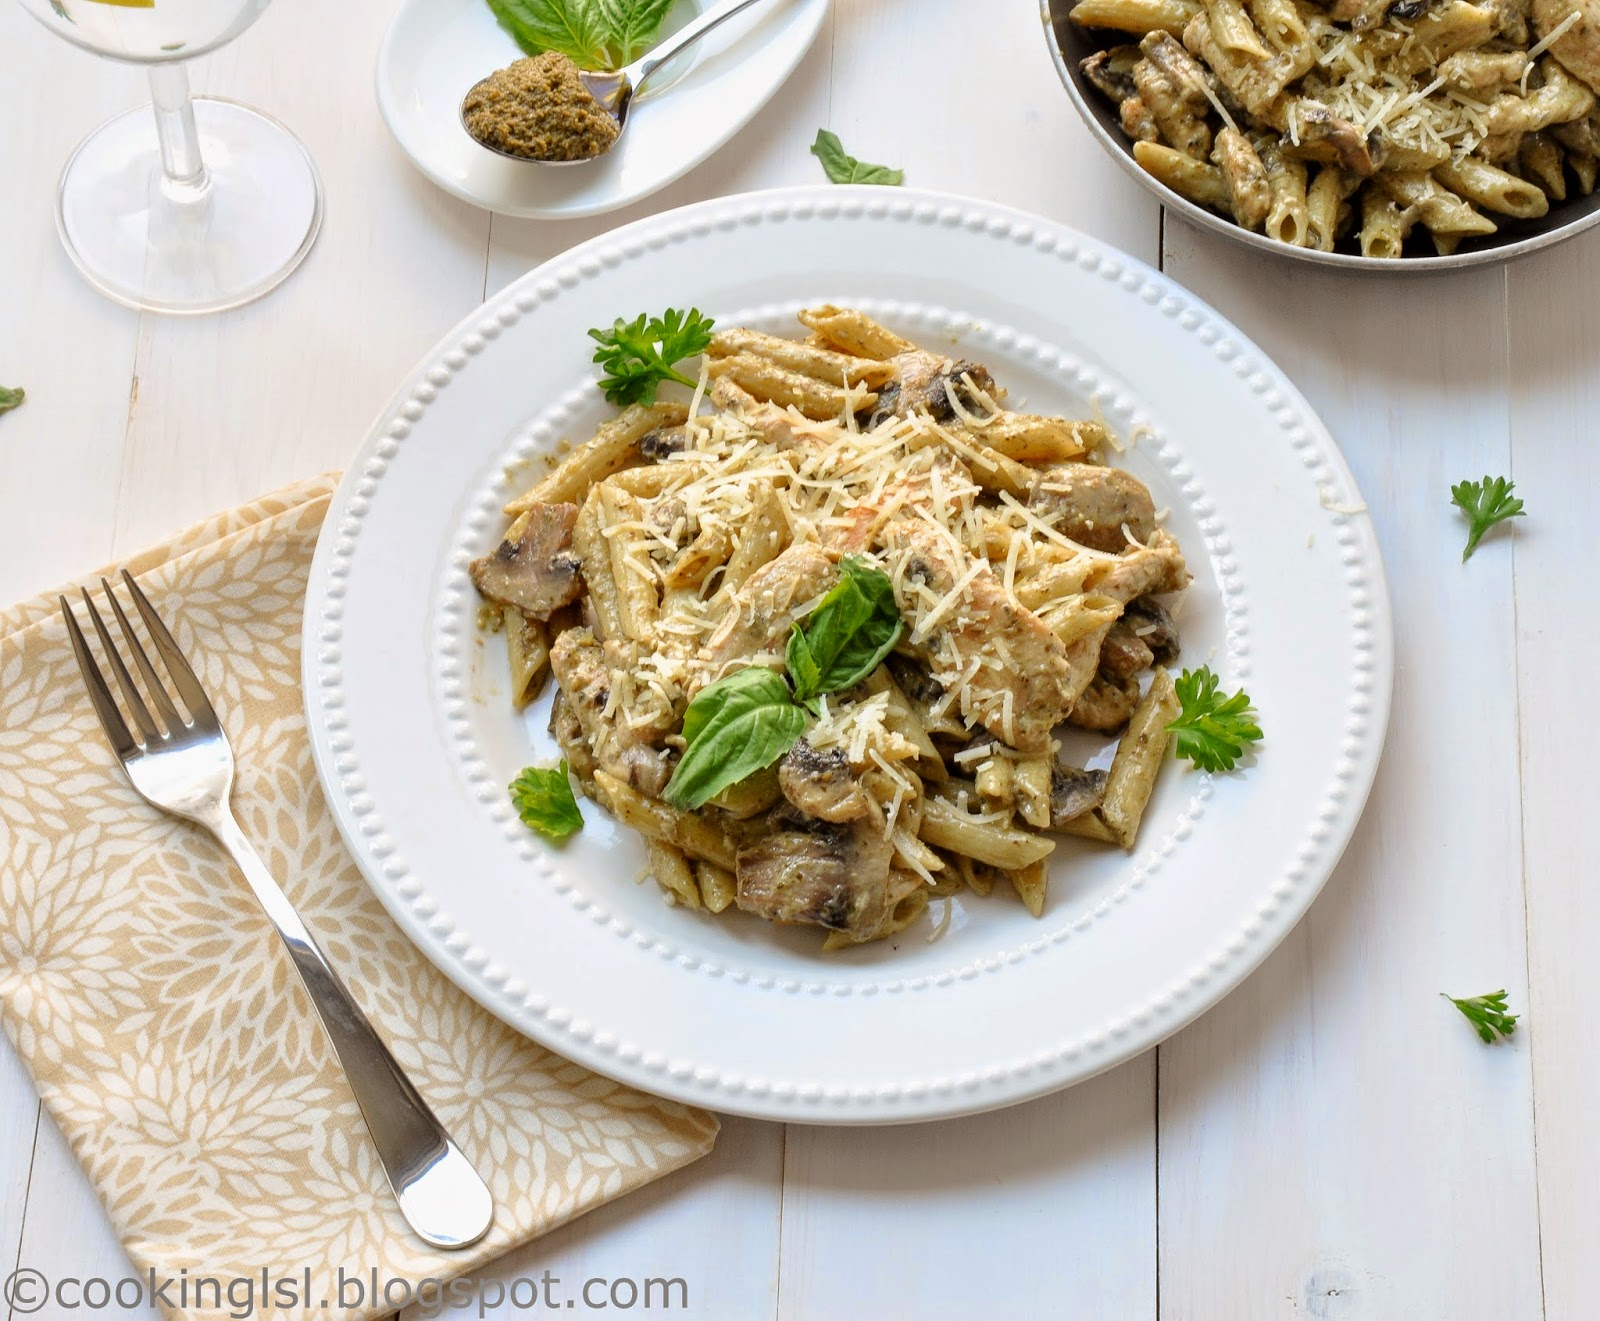 penne-alfredo-pasta-chicken-with-mushrooms-pesto-sauce